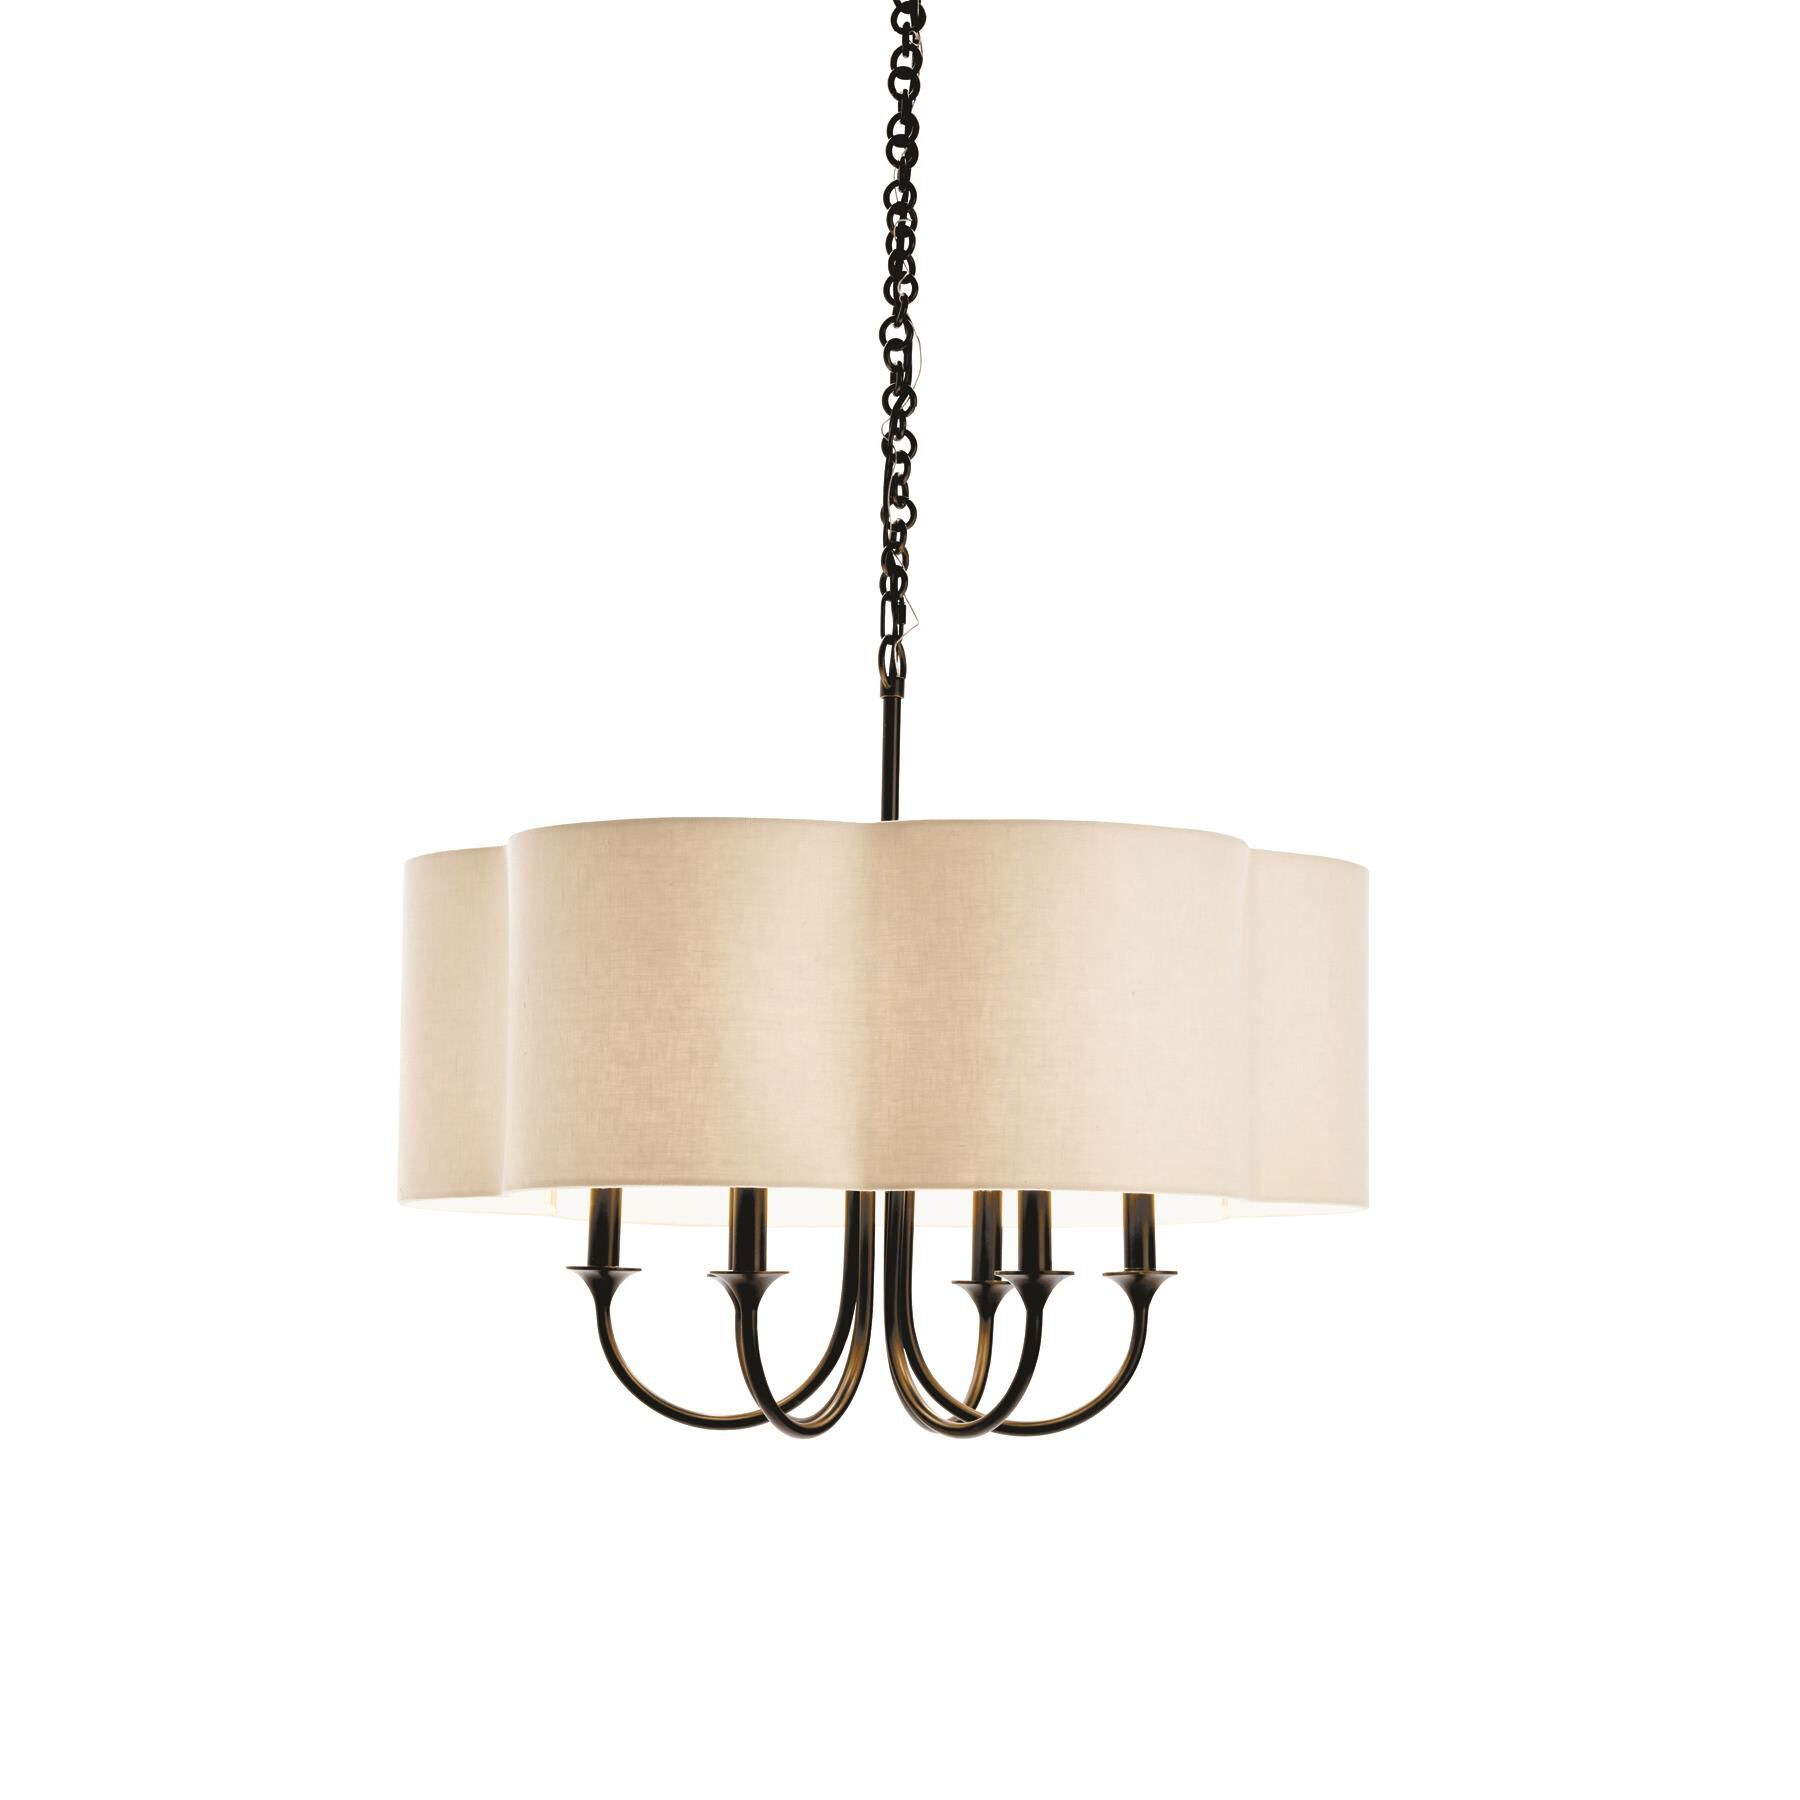 Arteriors Home Rittenhouse 26 Inch 6 Light Chandelier Rittenhouse - 89418 - Transitional Chandelier